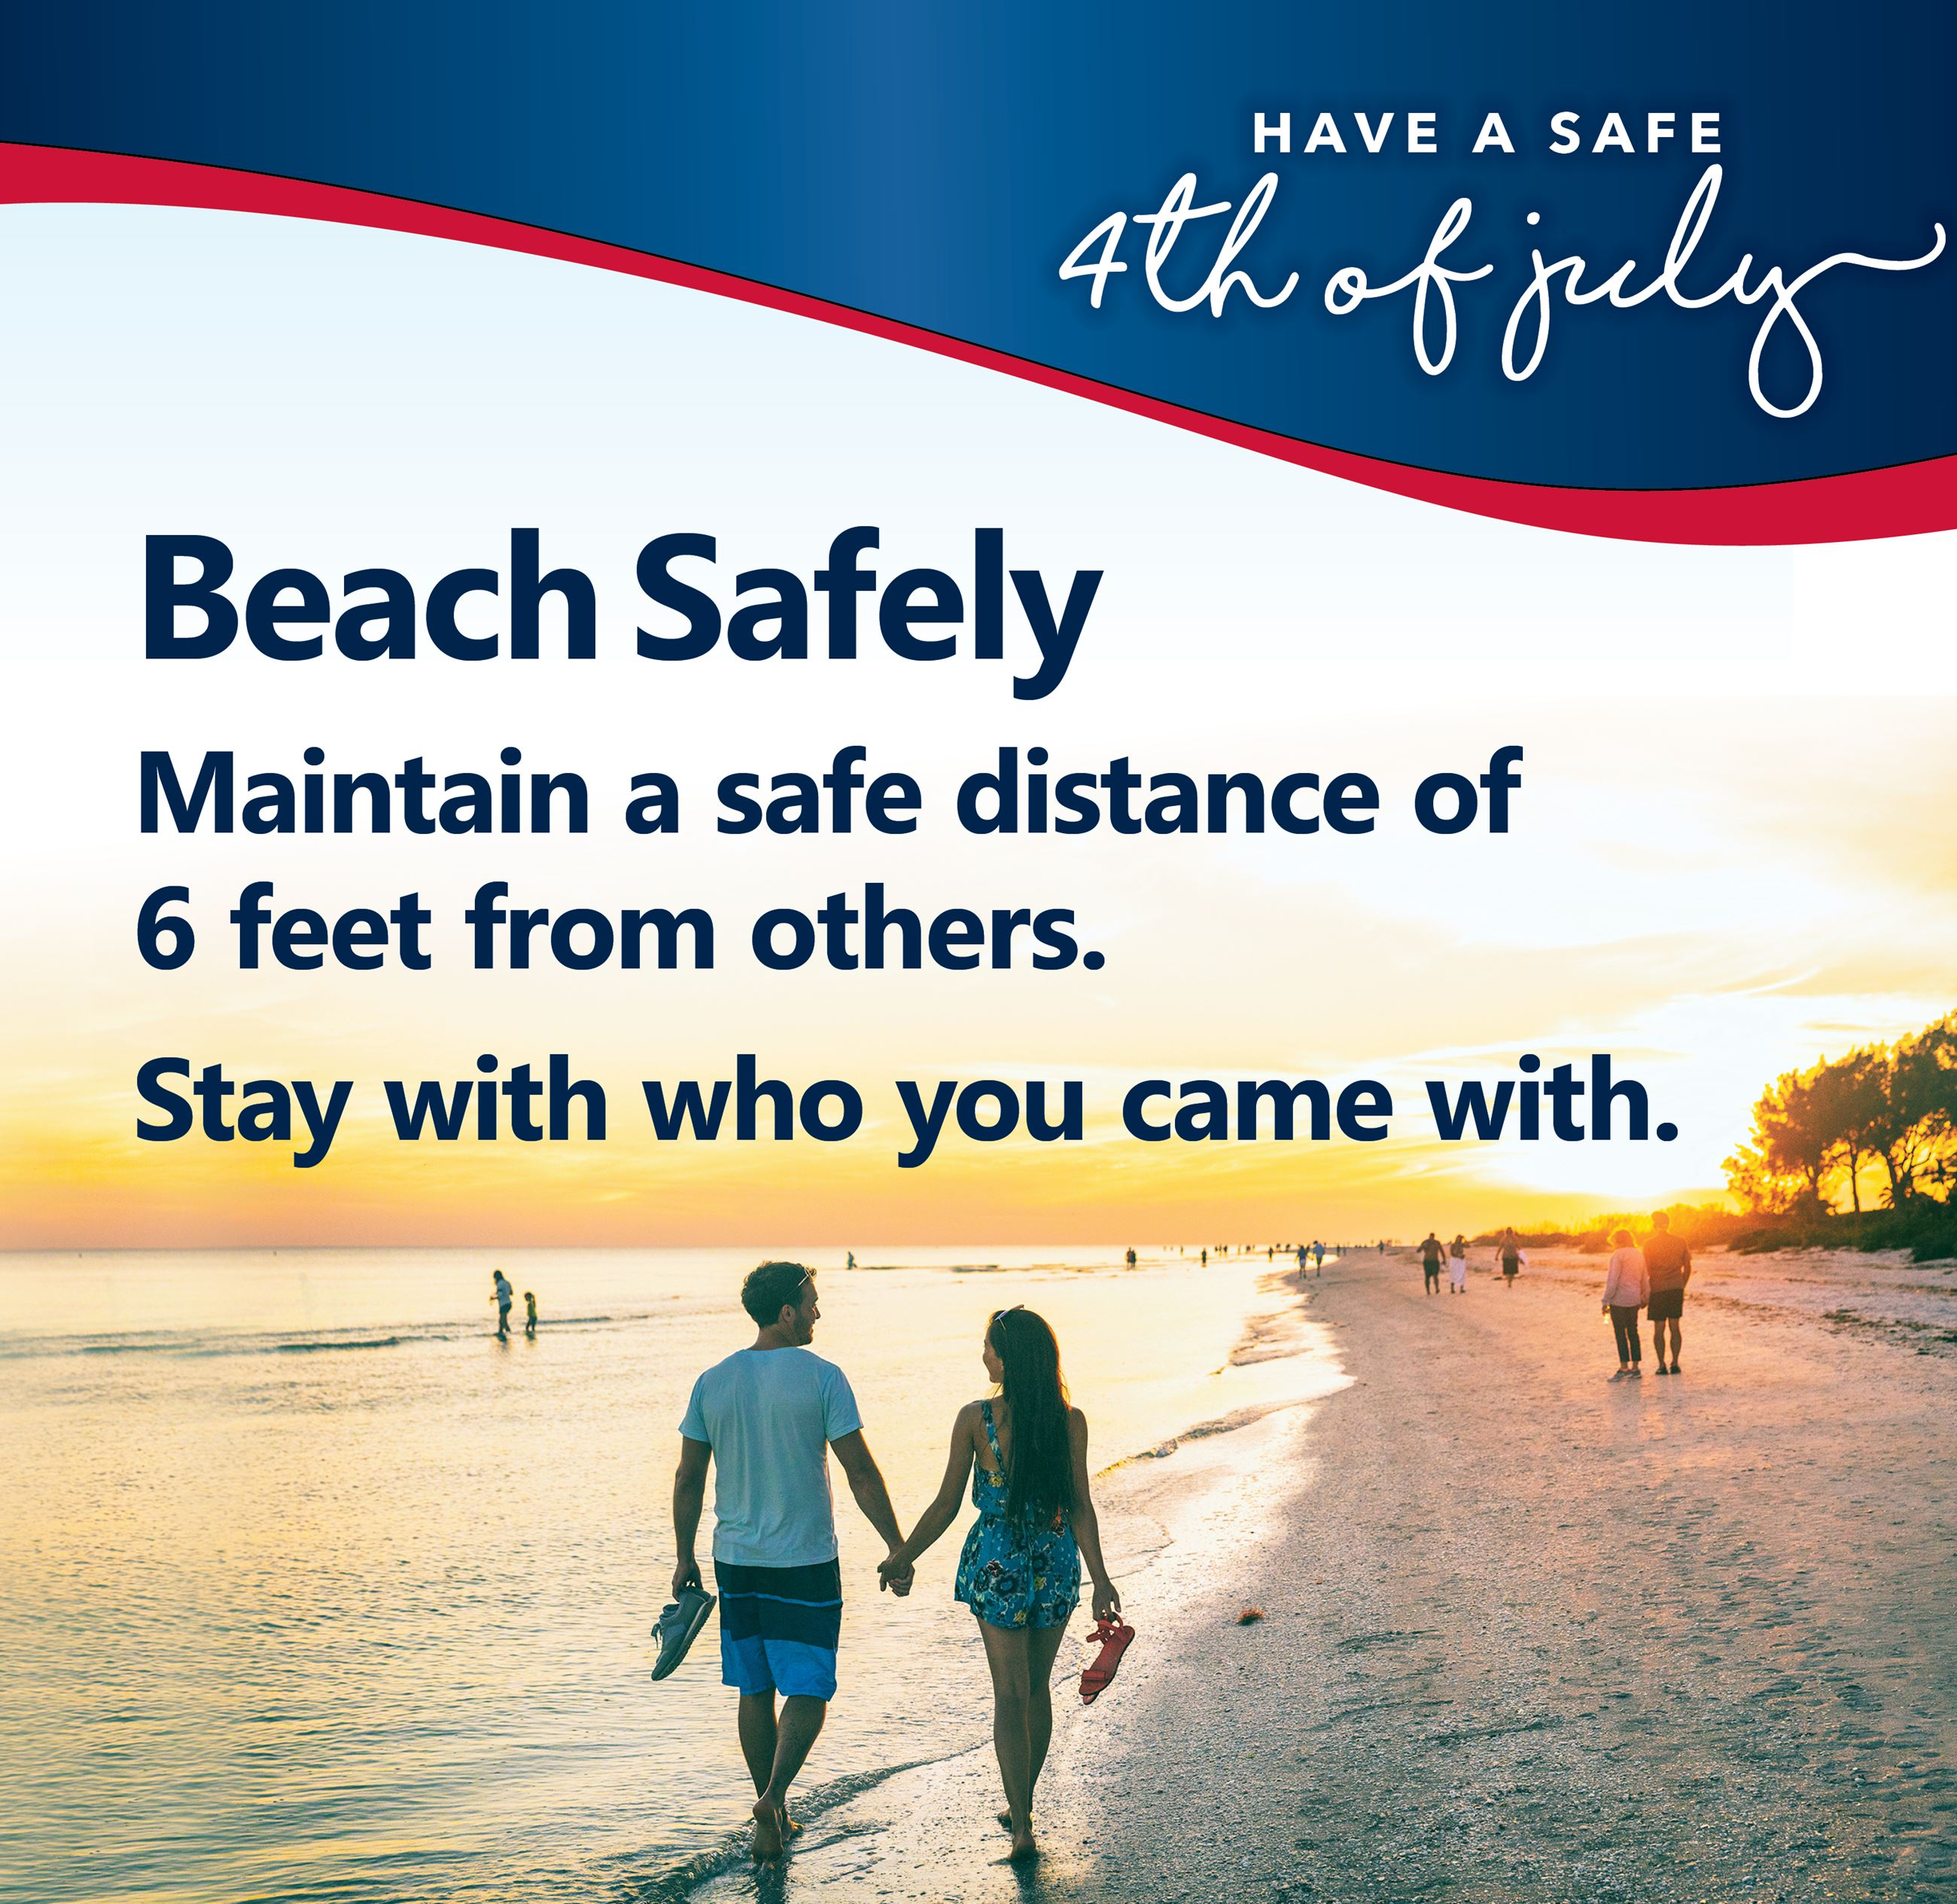 July Fourth Beach Safety